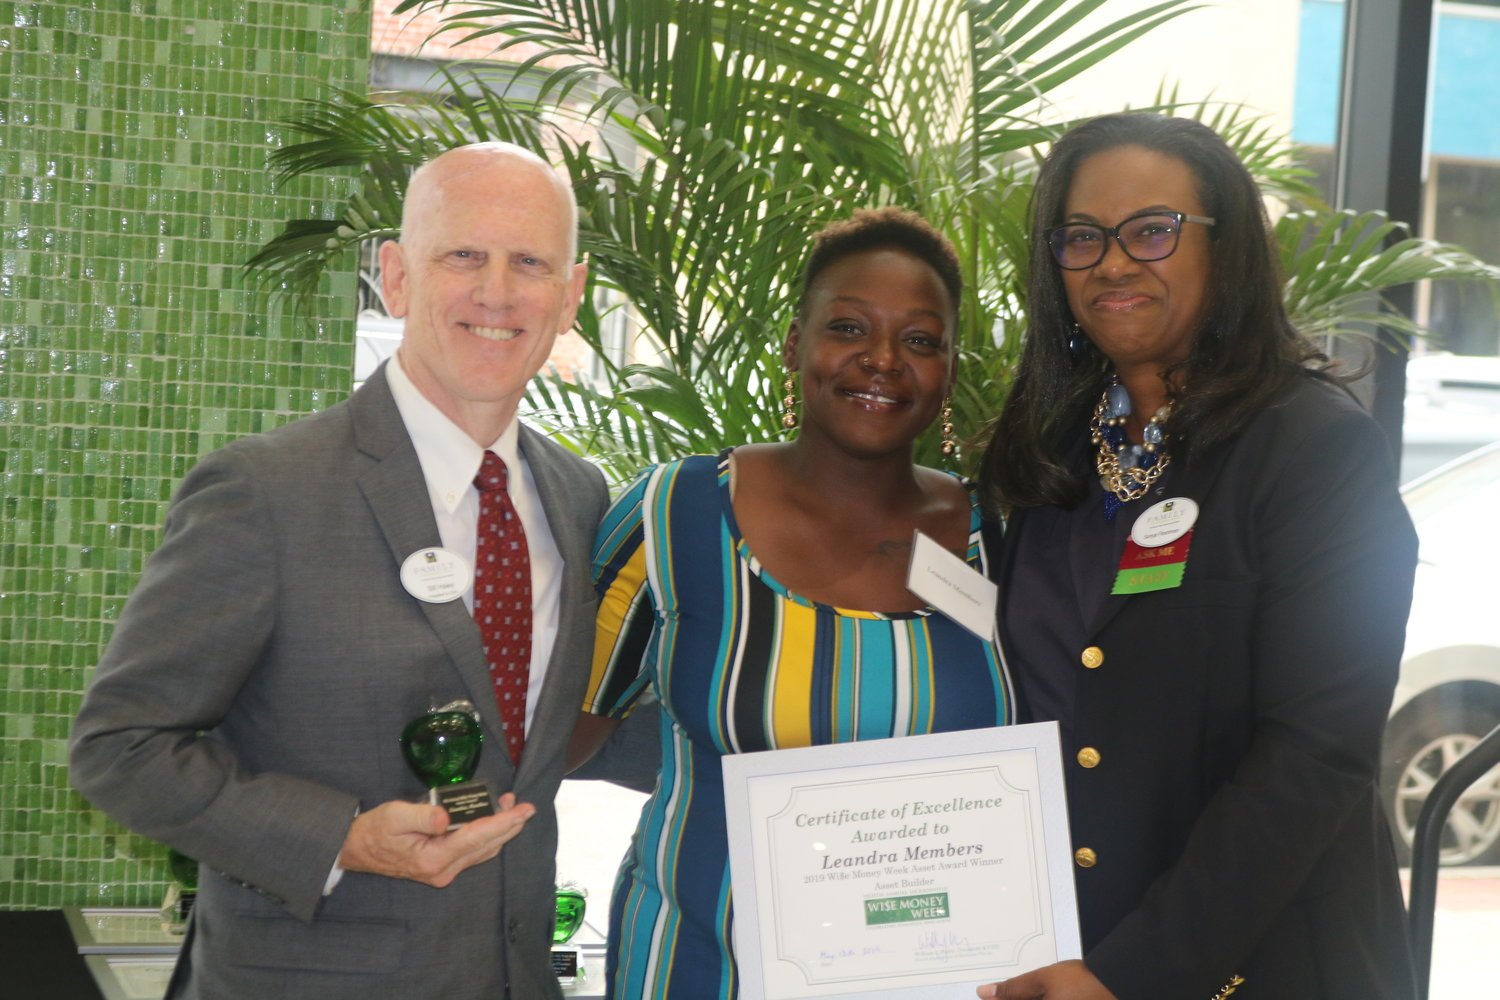 Family Foundations President and CEO Bill Haley and Manager of Financial Wellness Sonya Fleshman with LaTesha Jackson, winner of the 1st Time Homebuyer award.